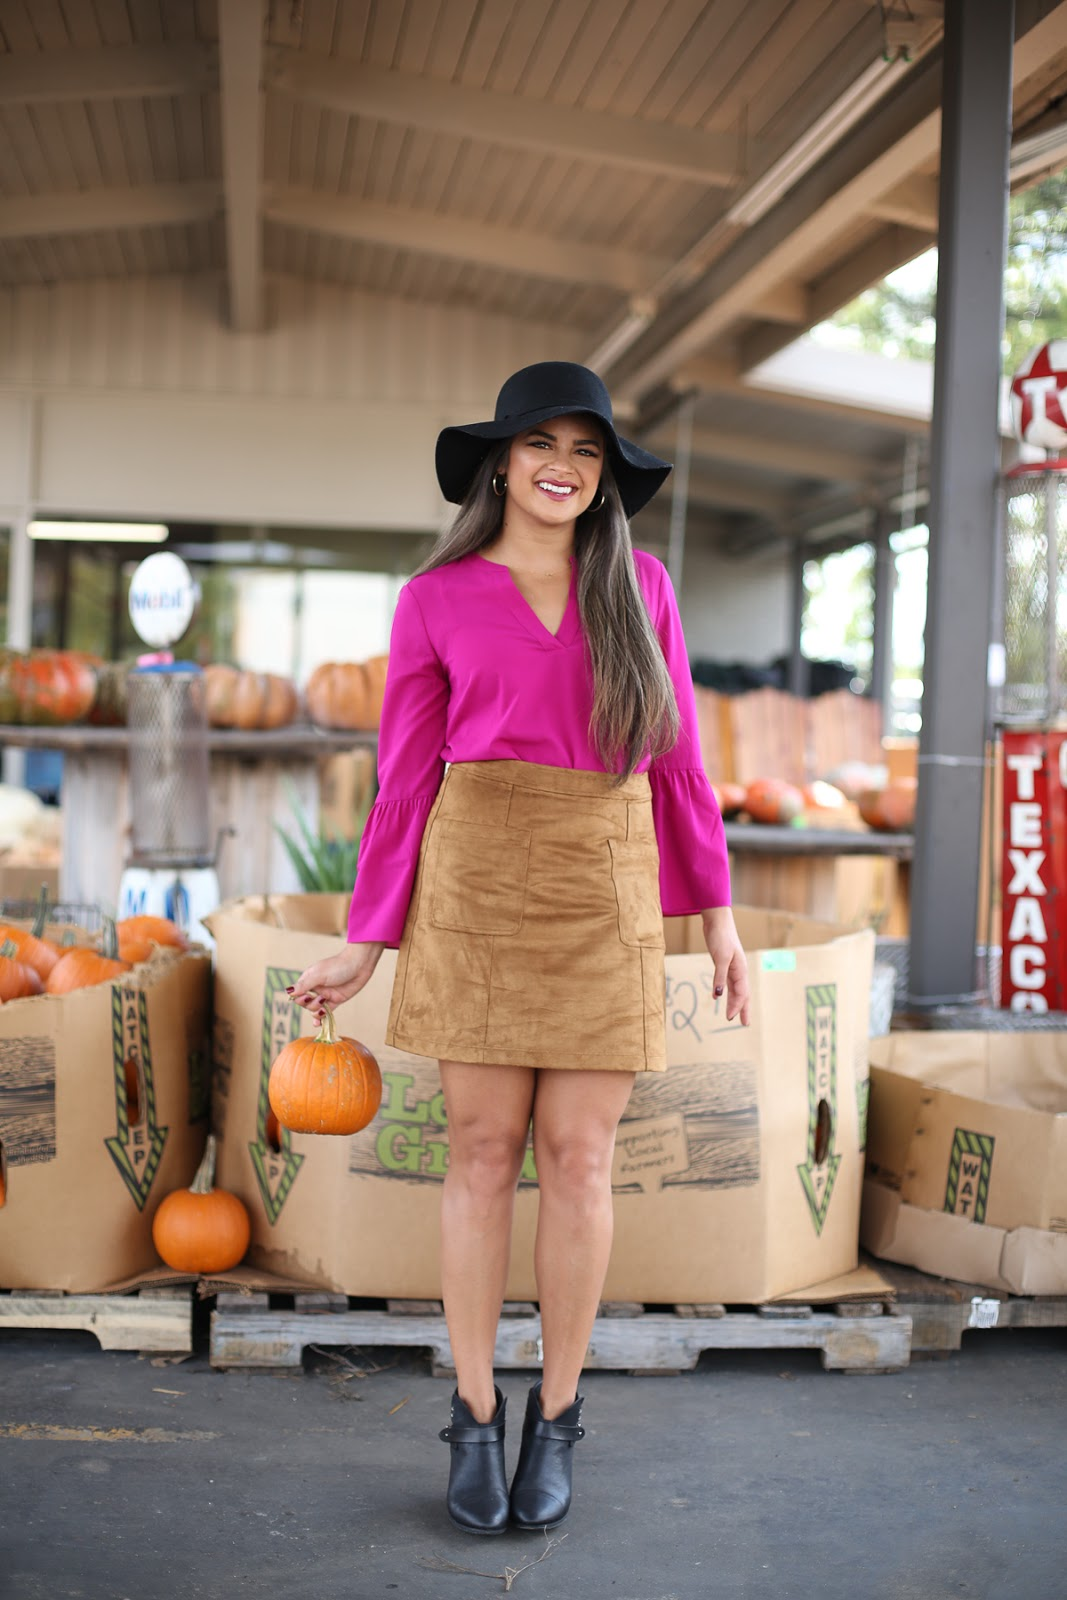 Priya the Blog, Nashville fashion blog, Nashville fashion blogger, Nashville style blog, Fall fashion, pumpkin patch outfit, what to wear to a pumpkin patch, floppy hat outfit, Rag & Bone Harrow booties, suede miniskirt, how to wear a suede miniskirt, Bell sleeve blouse, Rag & Bone, festive Fall outfit